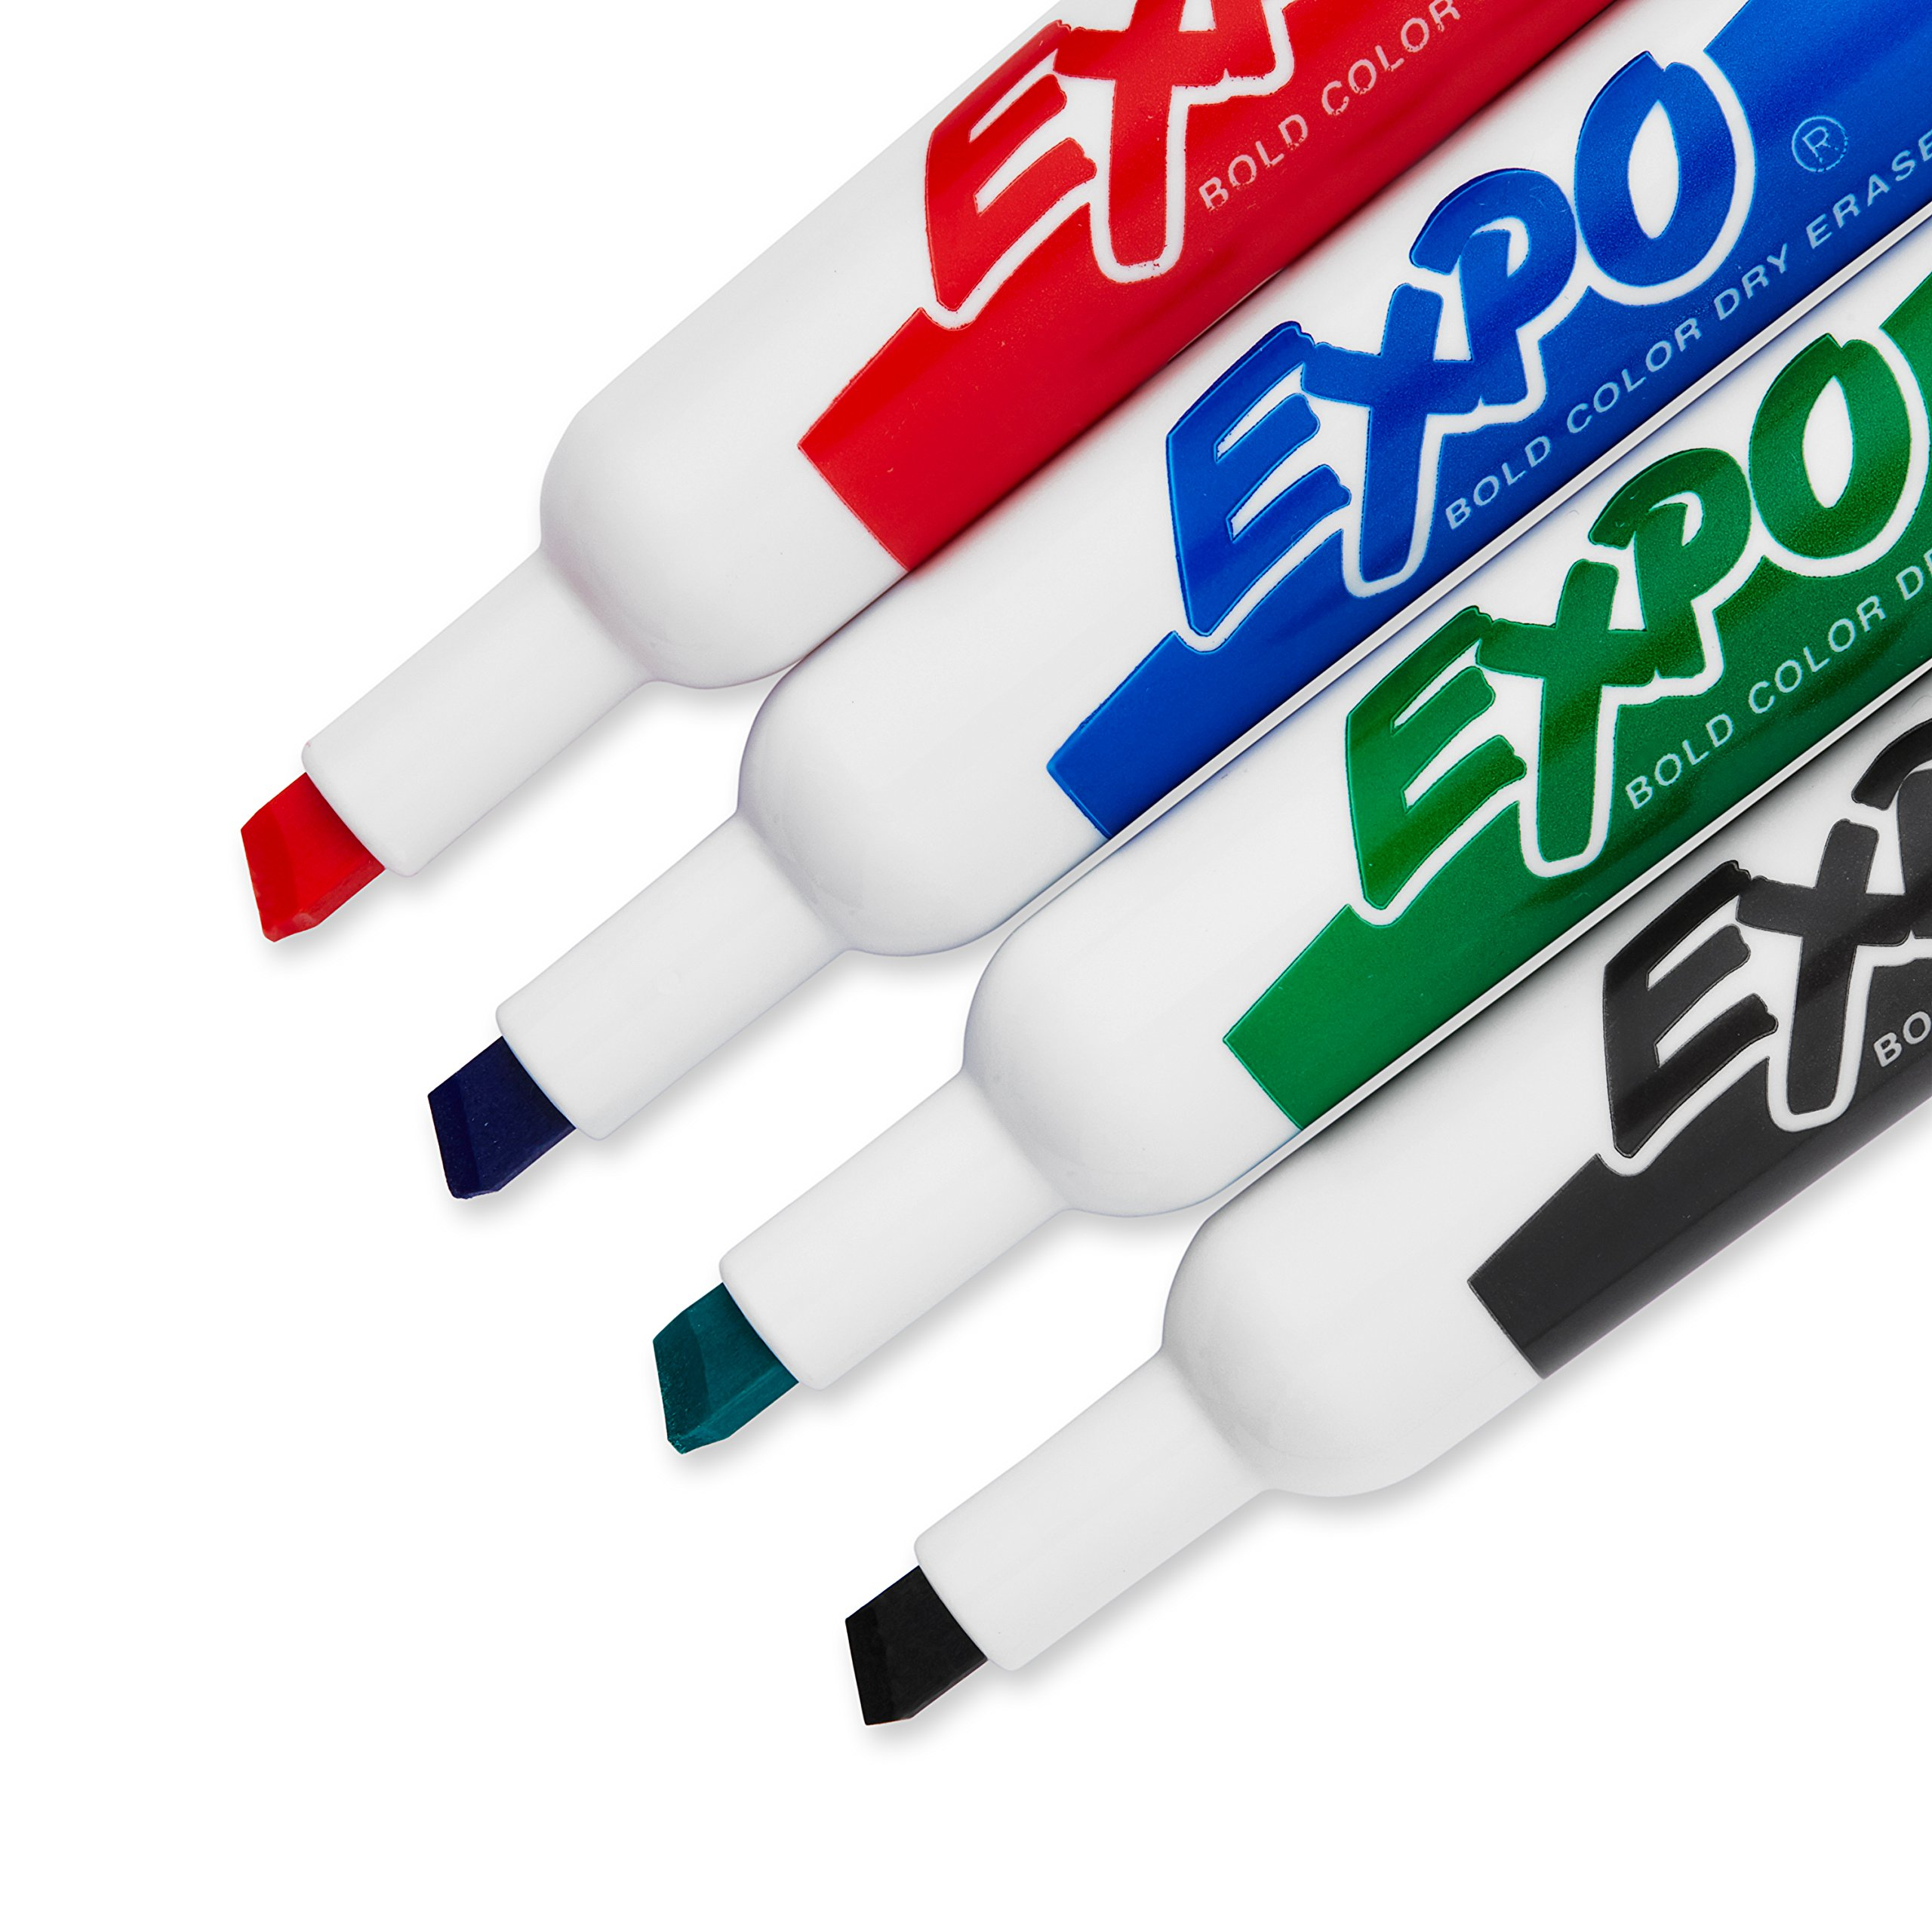 EXPO Original Dry Erase Set, Chisel Tip, Assorted Colors, 6-Piece by Expo (Image #3)